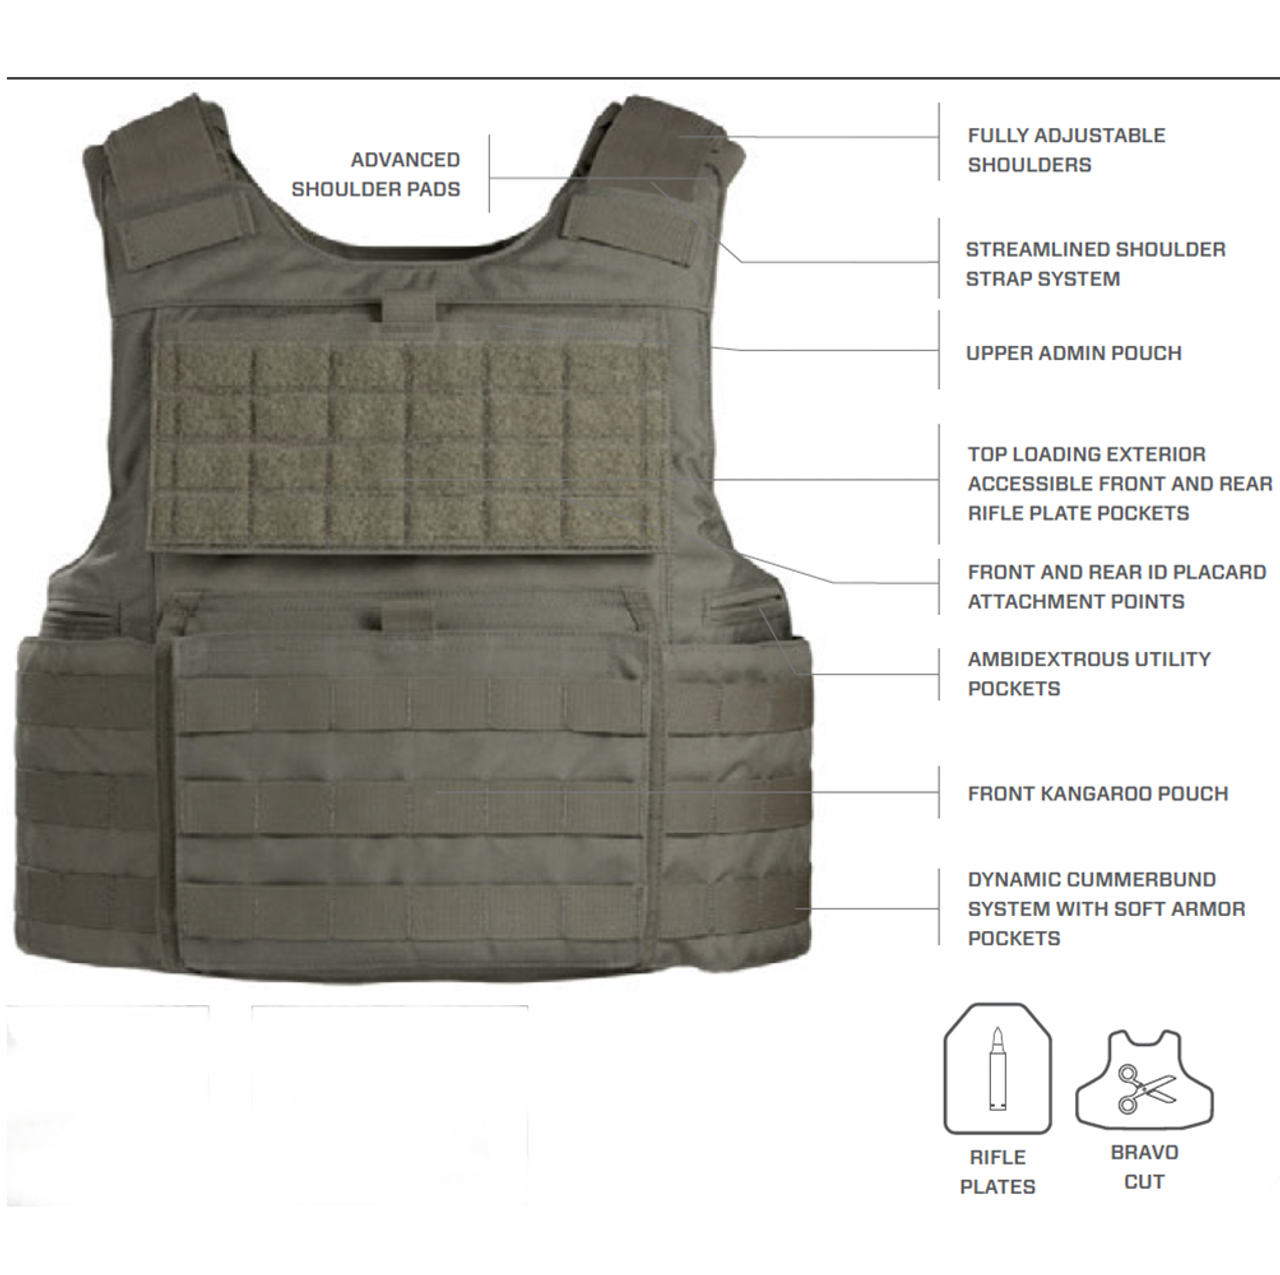 1e4c393a483b Armor Express ® Hard Core H3 Men's Overt Ballistic Body Armor Carrier,  Adjustable Shoulders and waist, Ventilation Liner system and front kangaroo  ...